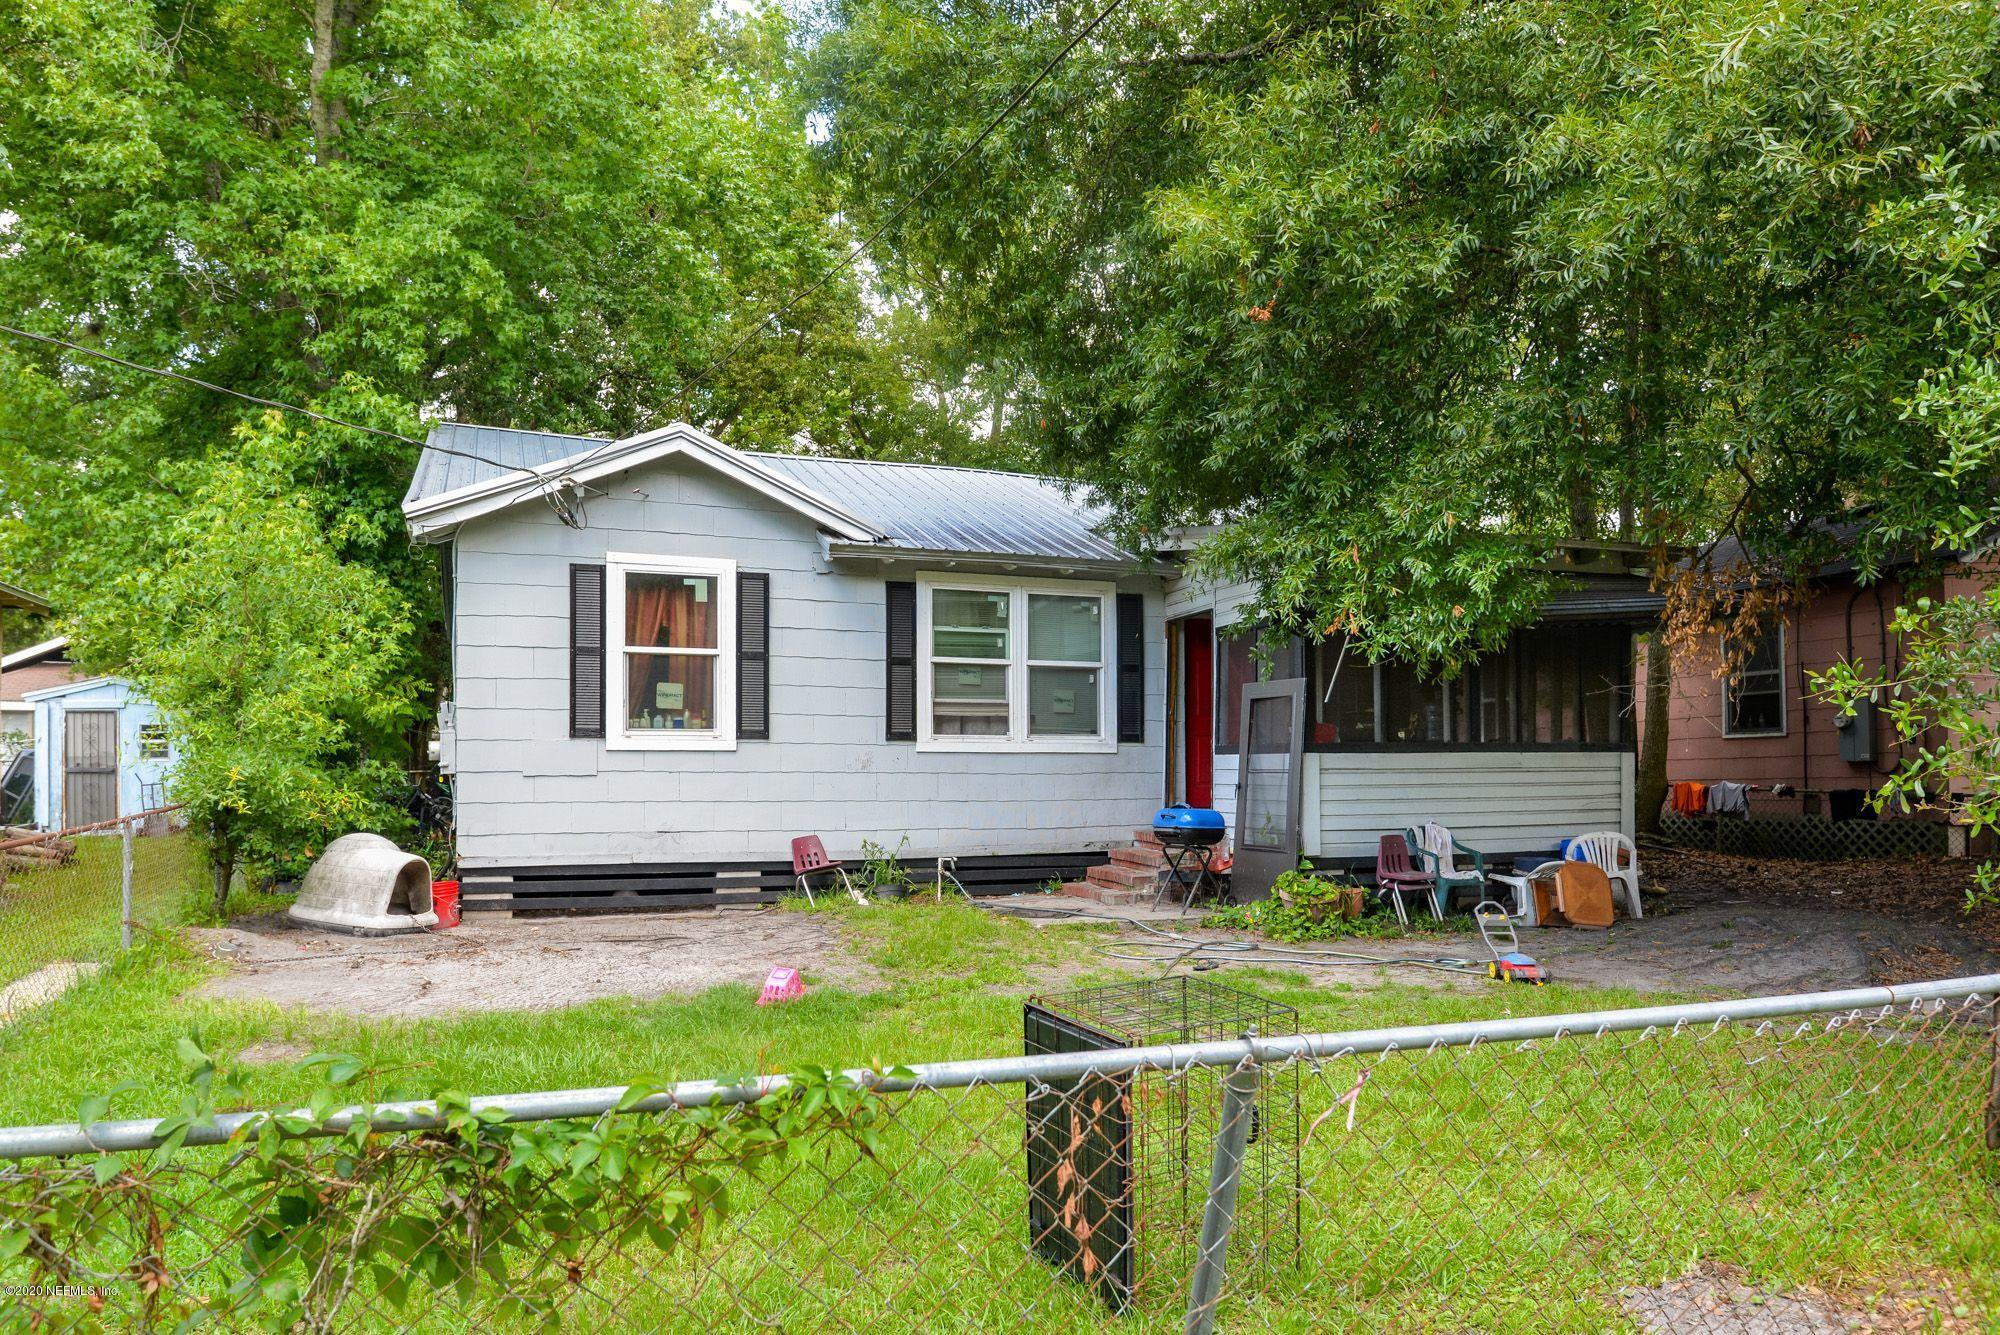 226 BRONSON, JACKSONVILLE, FLORIDA 32254, 3 Bedrooms Bedrooms, ,1 BathroomBathrooms,Investment / MultiFamily,For sale,BRONSON,1057531